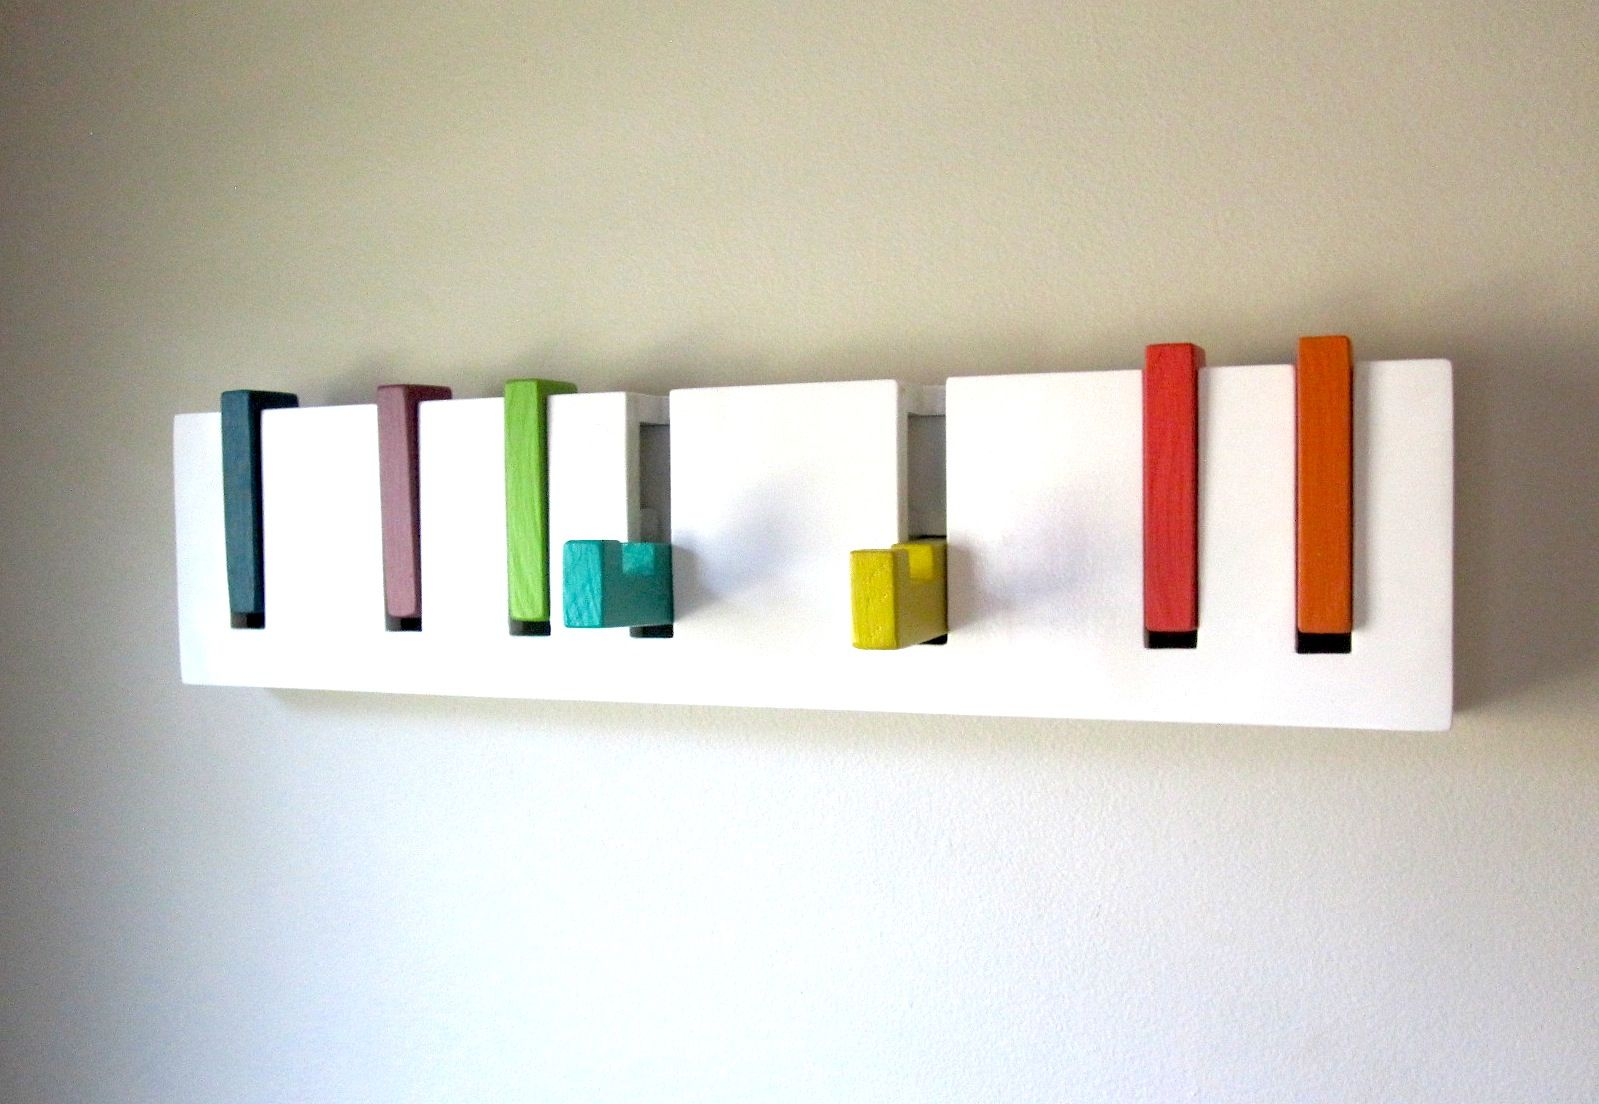 Cool Wall Coat Racks Let The Coat Rack Hook Search Begin Love These Rainbow